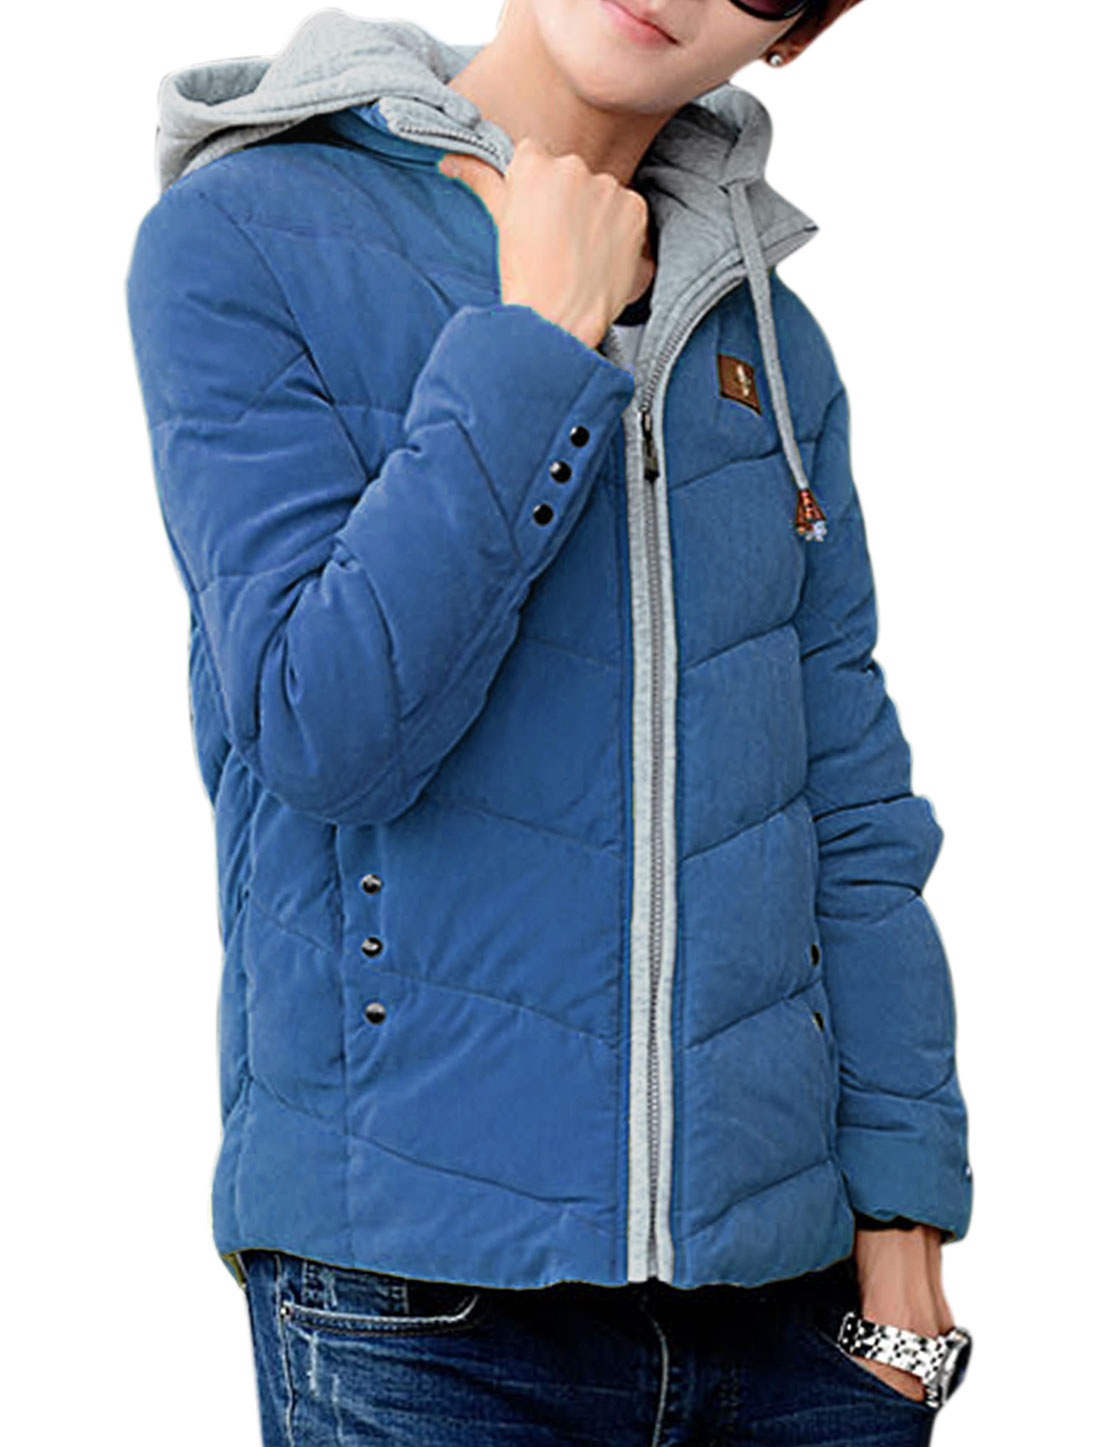 Man New Style Design Zip Up Long Sleeve Hooded Dark Blue Padded Coat M